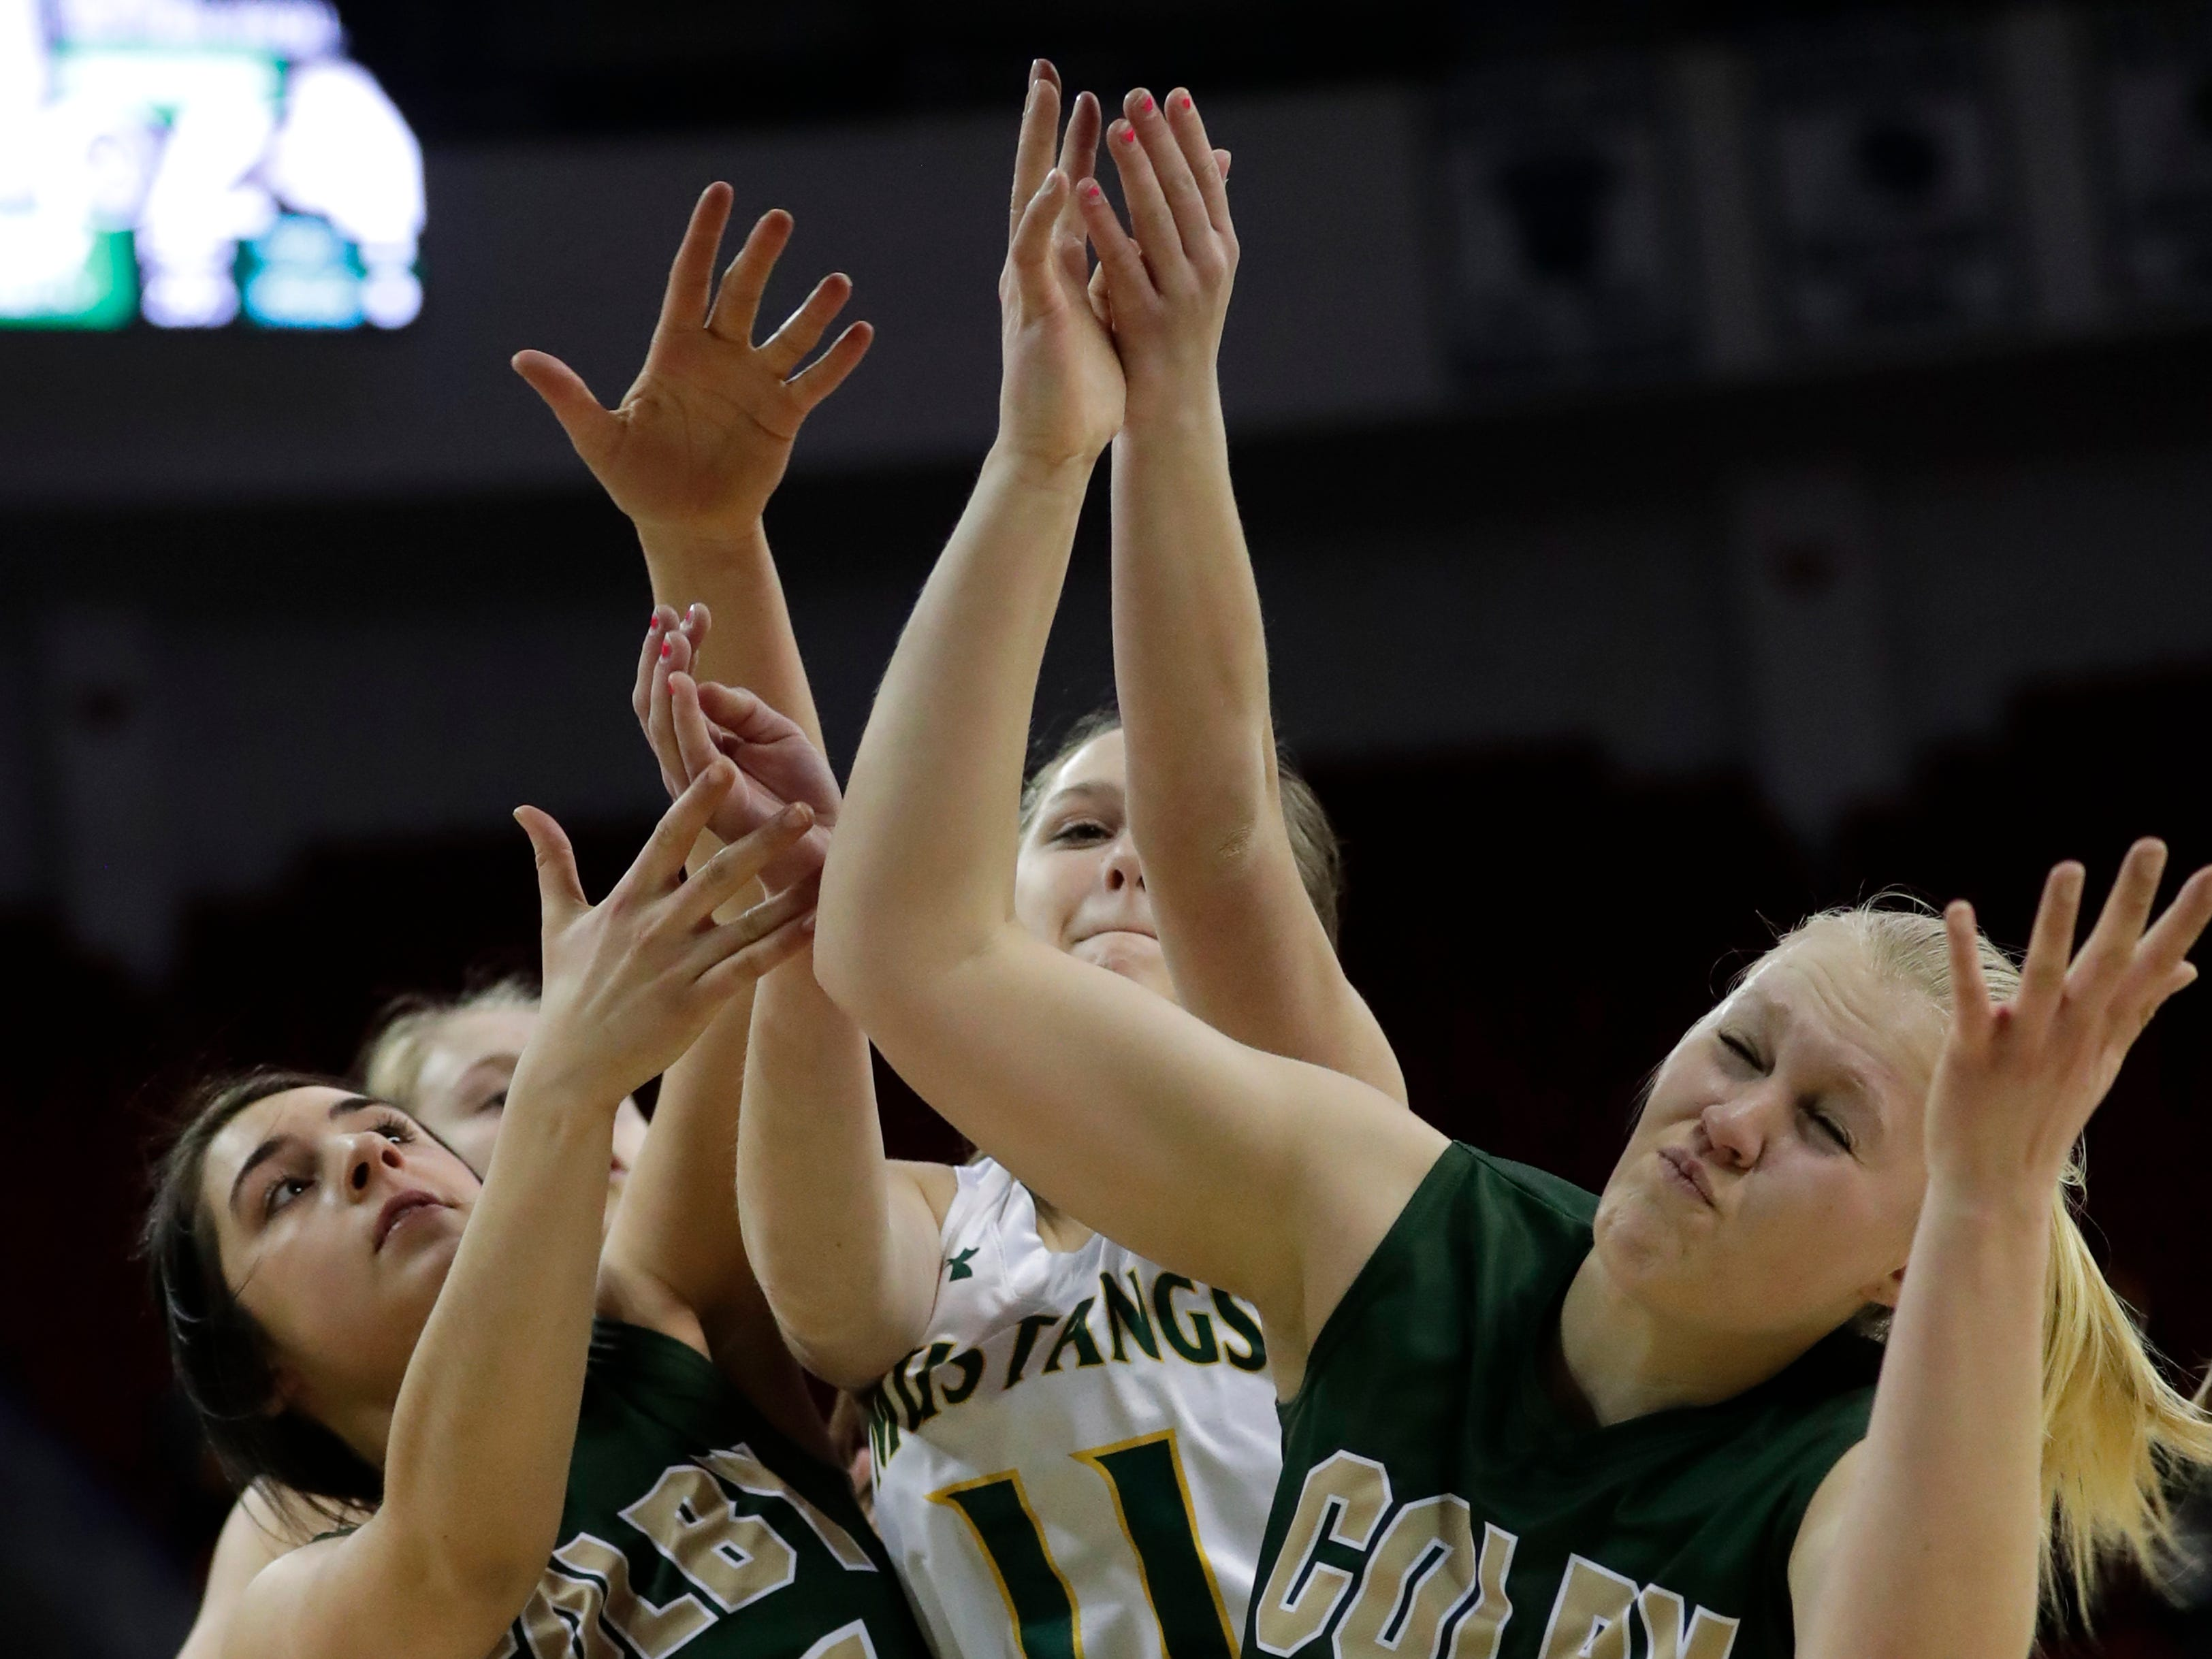 Colby's Mackenzie Seemann (21) and Heather Lynn (33) battle for a rebound against Melrose-Mindoro's Evi Radcliffe (11)during their Division 4 semifinal game at the WIAA girls state basketball tournament Thursday, March 7, 2019, at the Resch Center in Ashwaubenon, Wis.